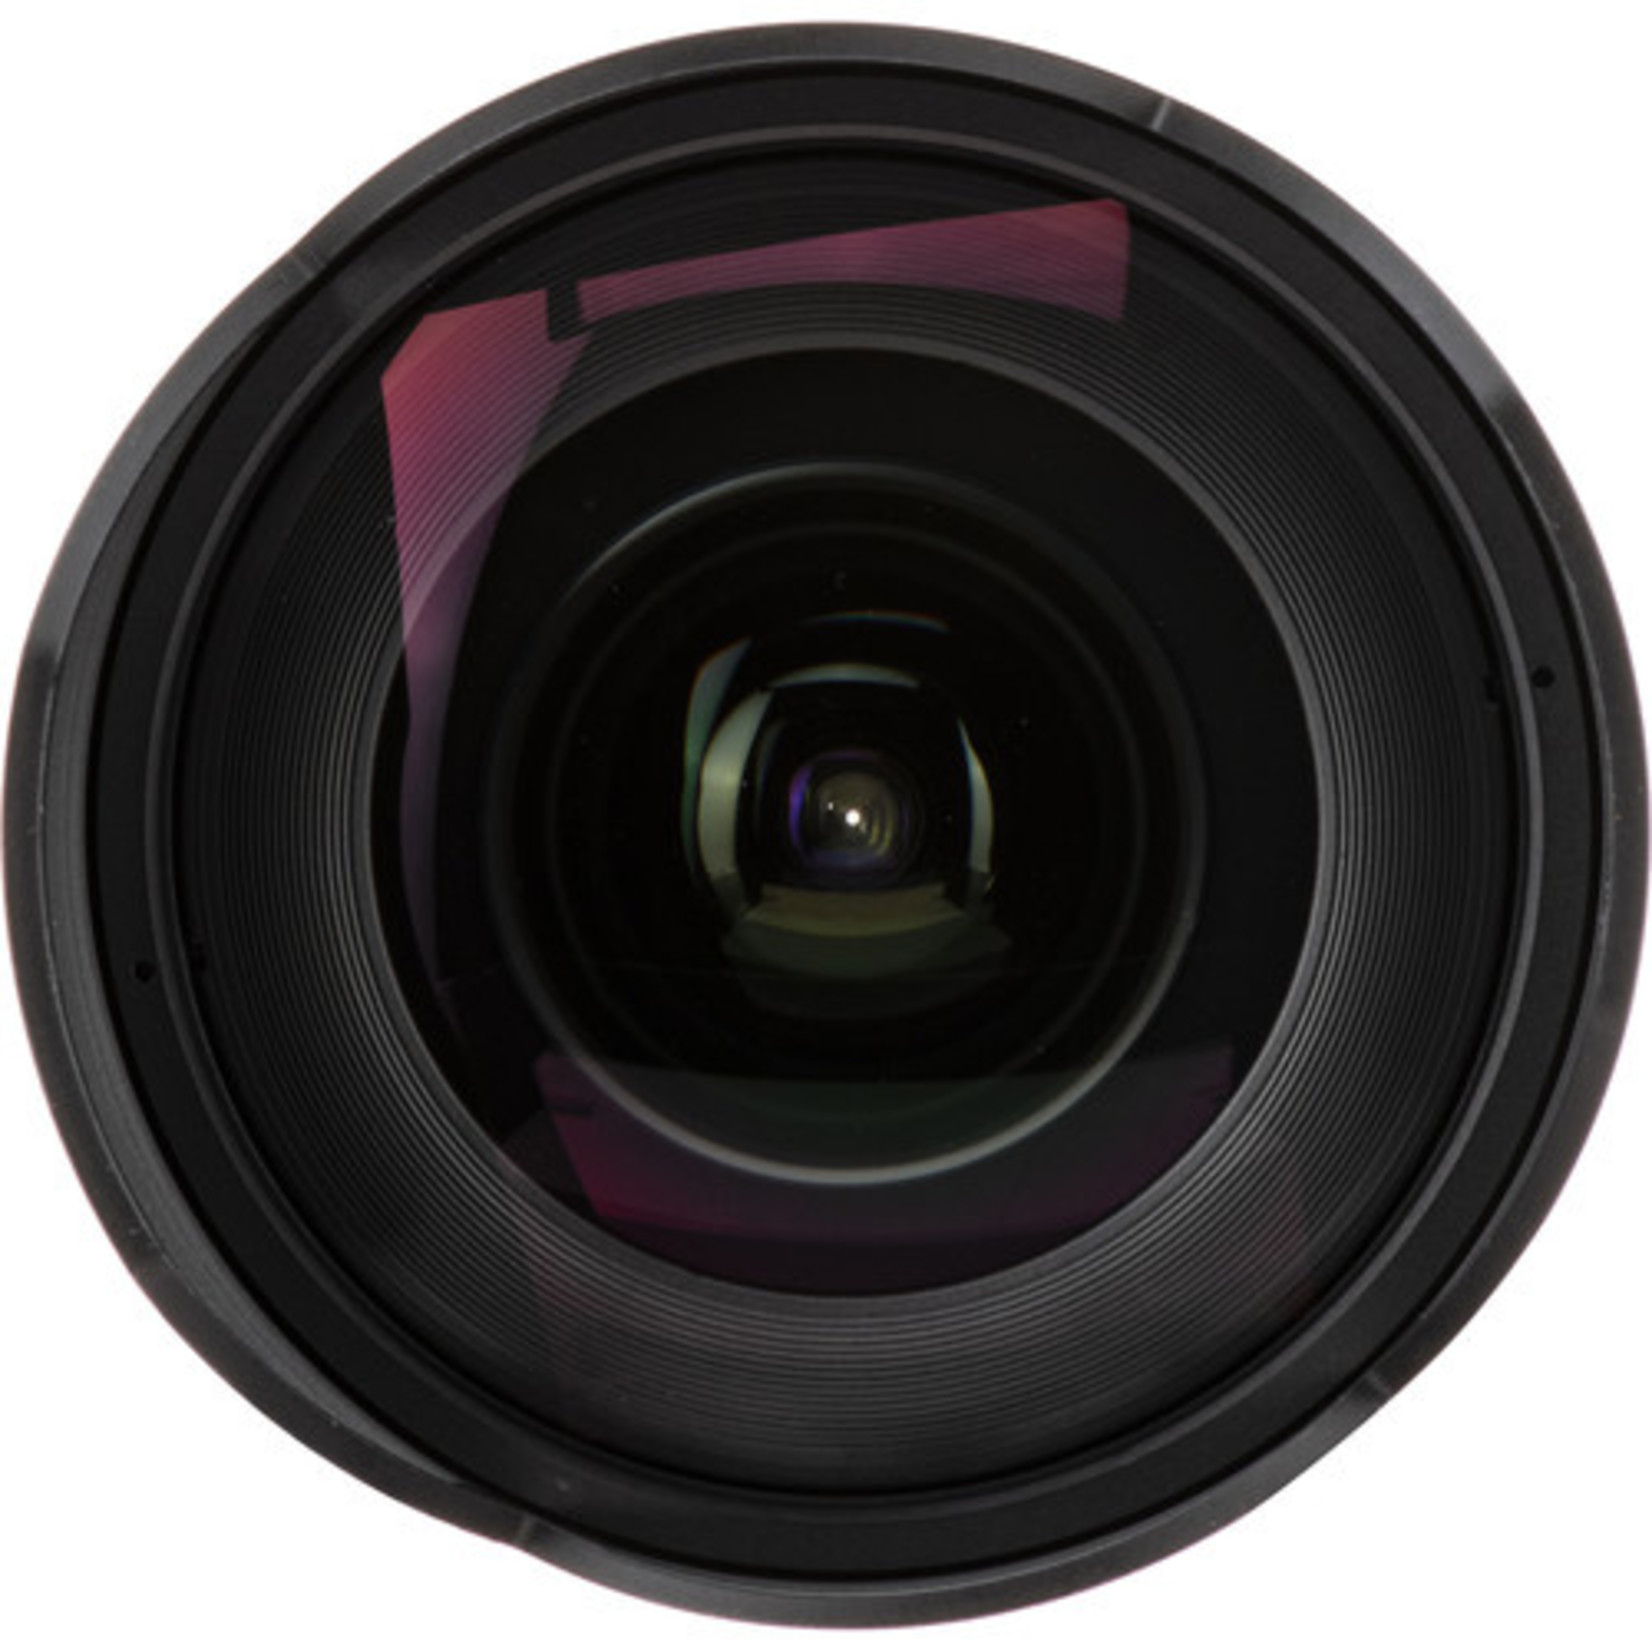 Rokinon Rokinon 14mm F2.8 IF ED Super Wide Angle Lens for Nikon AE with Automatic Chip